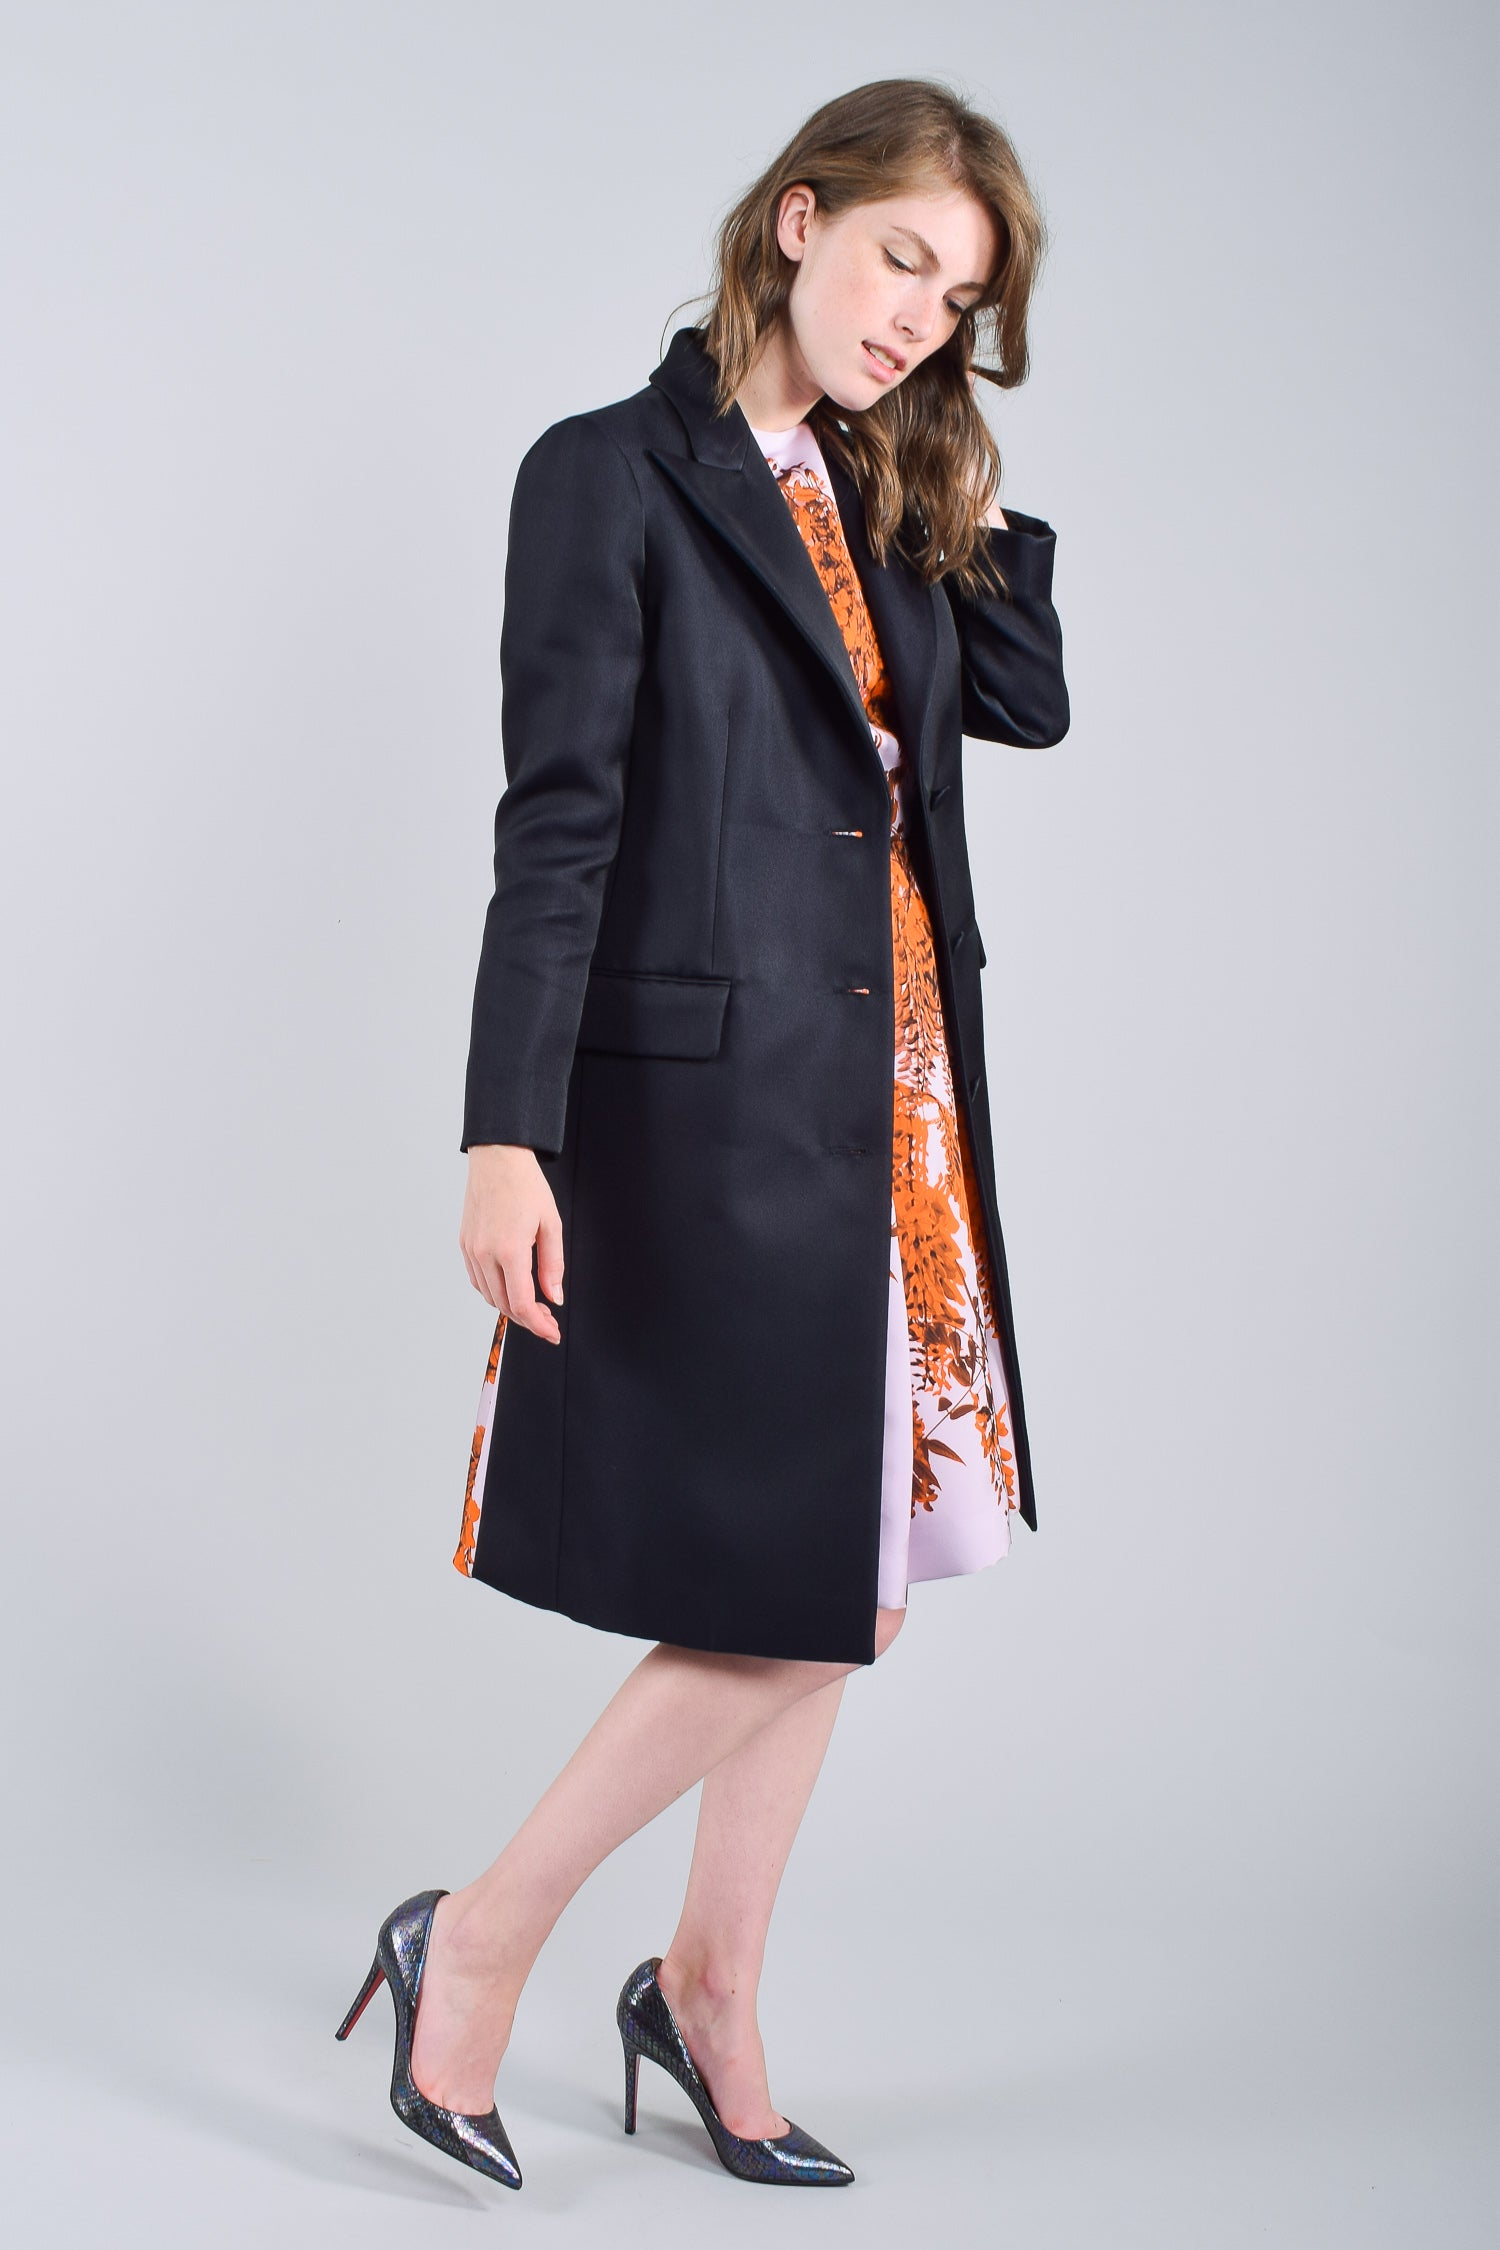 Christian Dior 2014 Pleated Coat w/ Floral Pleats Size 6